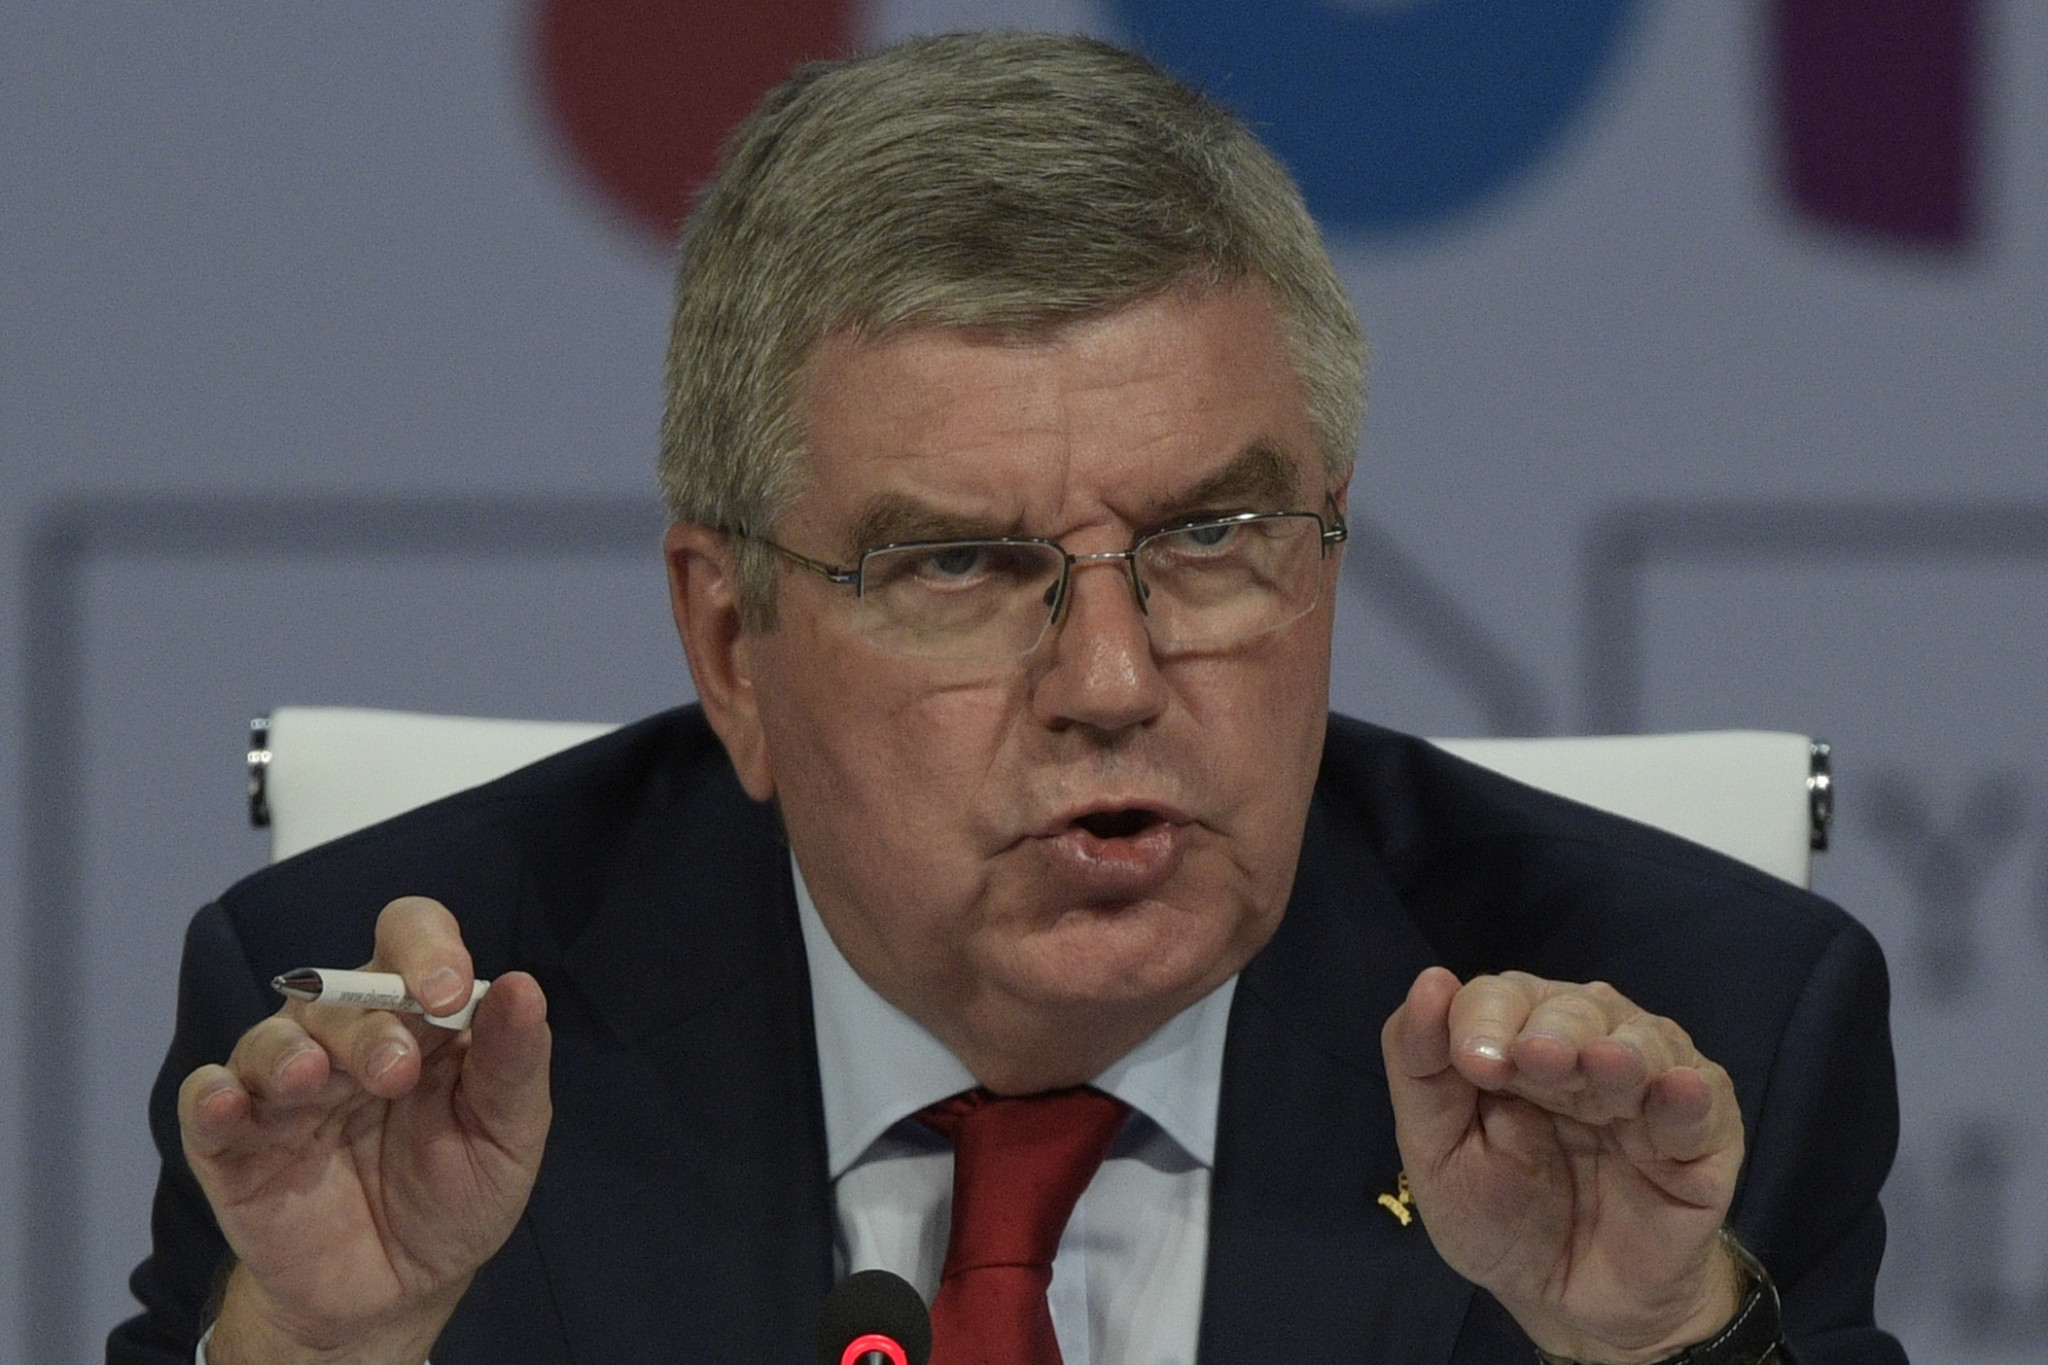 IOC President Thomas Bach said the team showed their continued commitment to helping refugees ©Getty Images